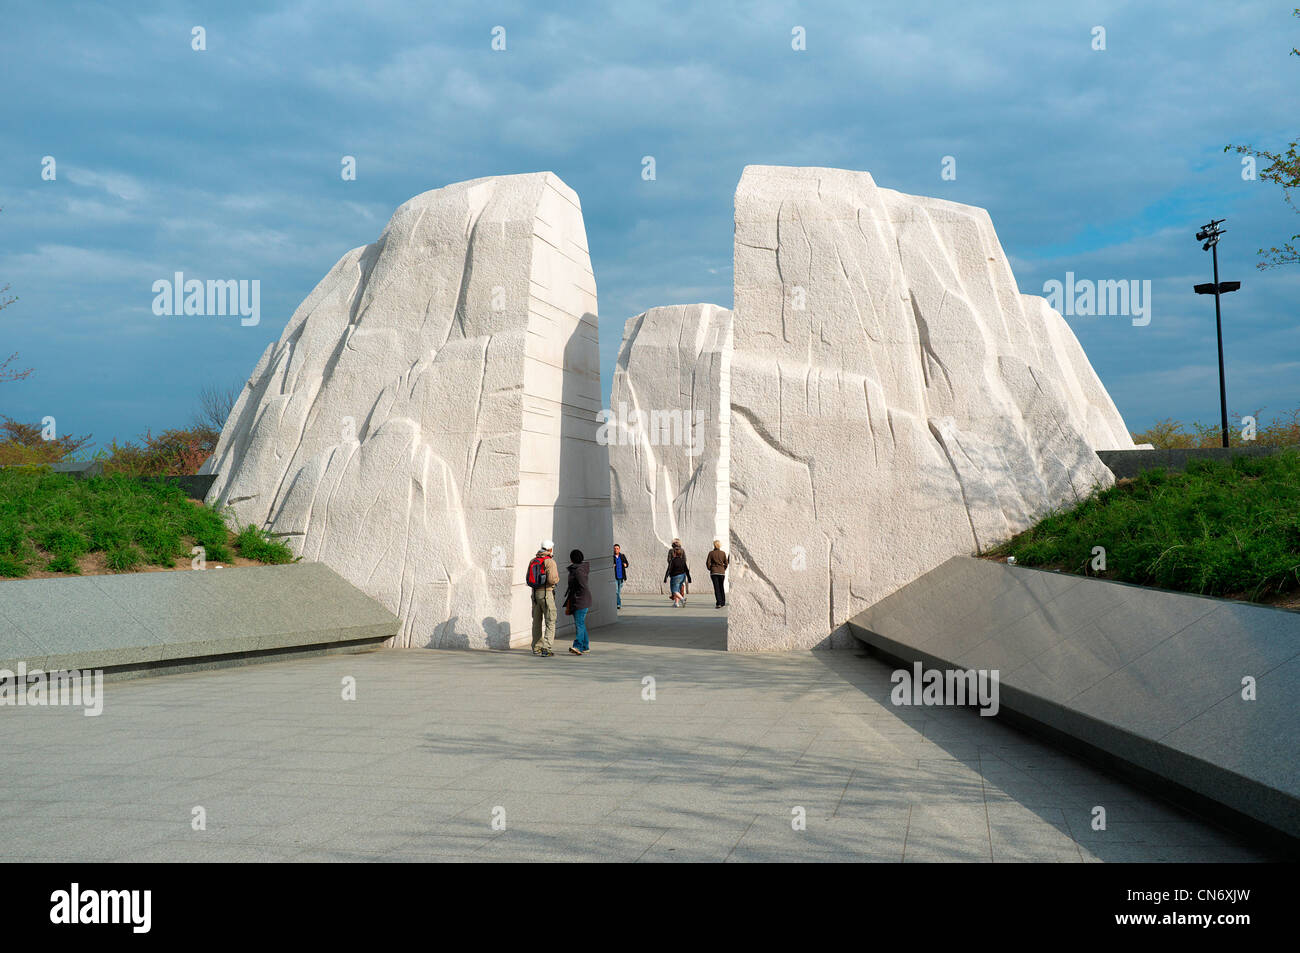 Entrance to the Martin Luther King Memorial in Washington DC - Stock Image